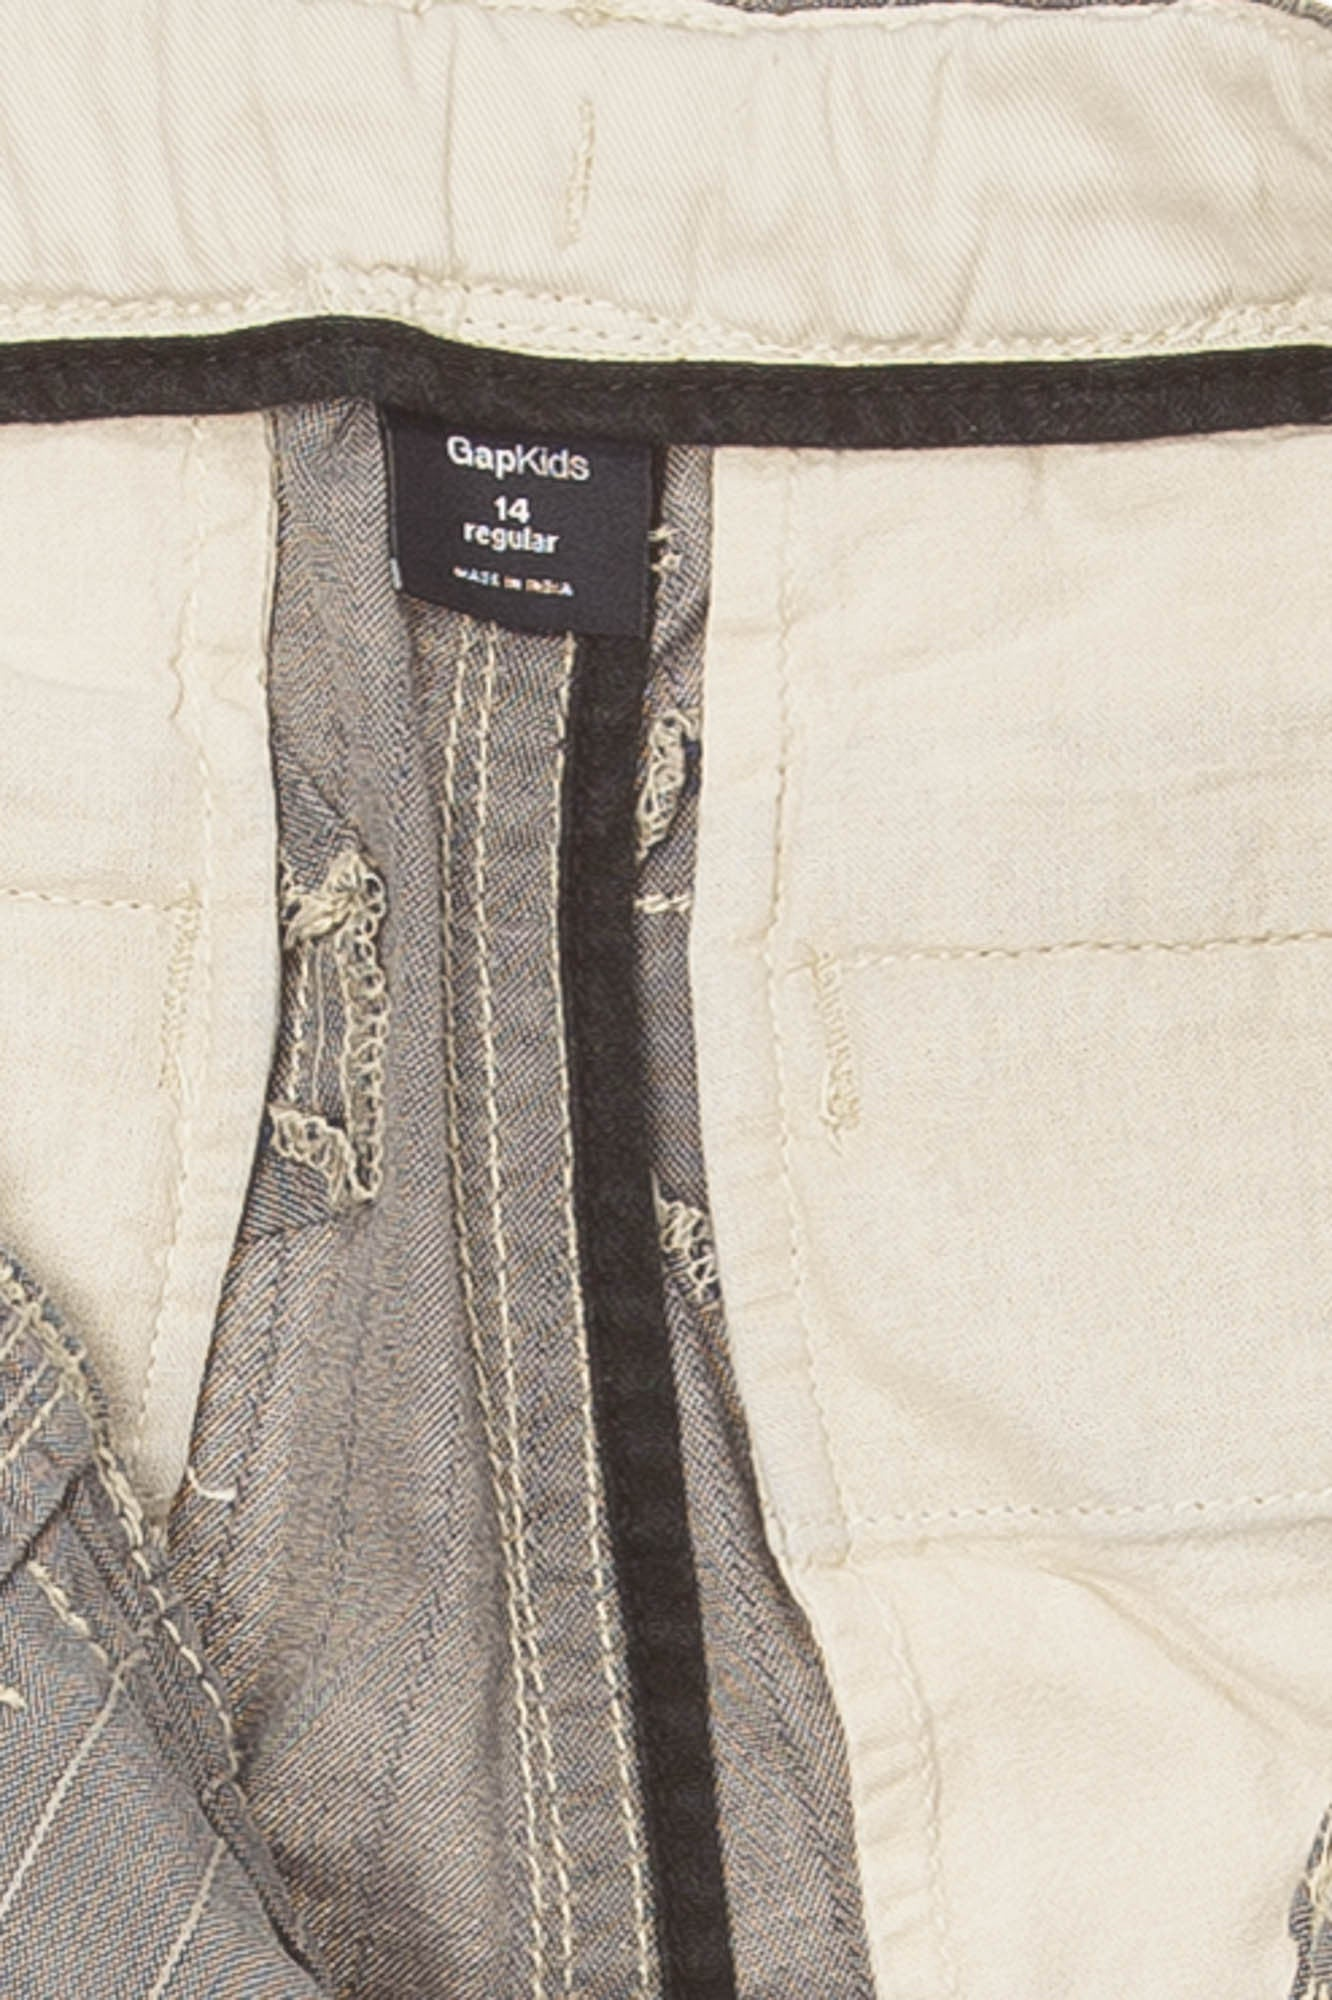 a87043b3b1 GapKids - Blue and White Striped Cargo Shorts - 14 – LUXHAVE